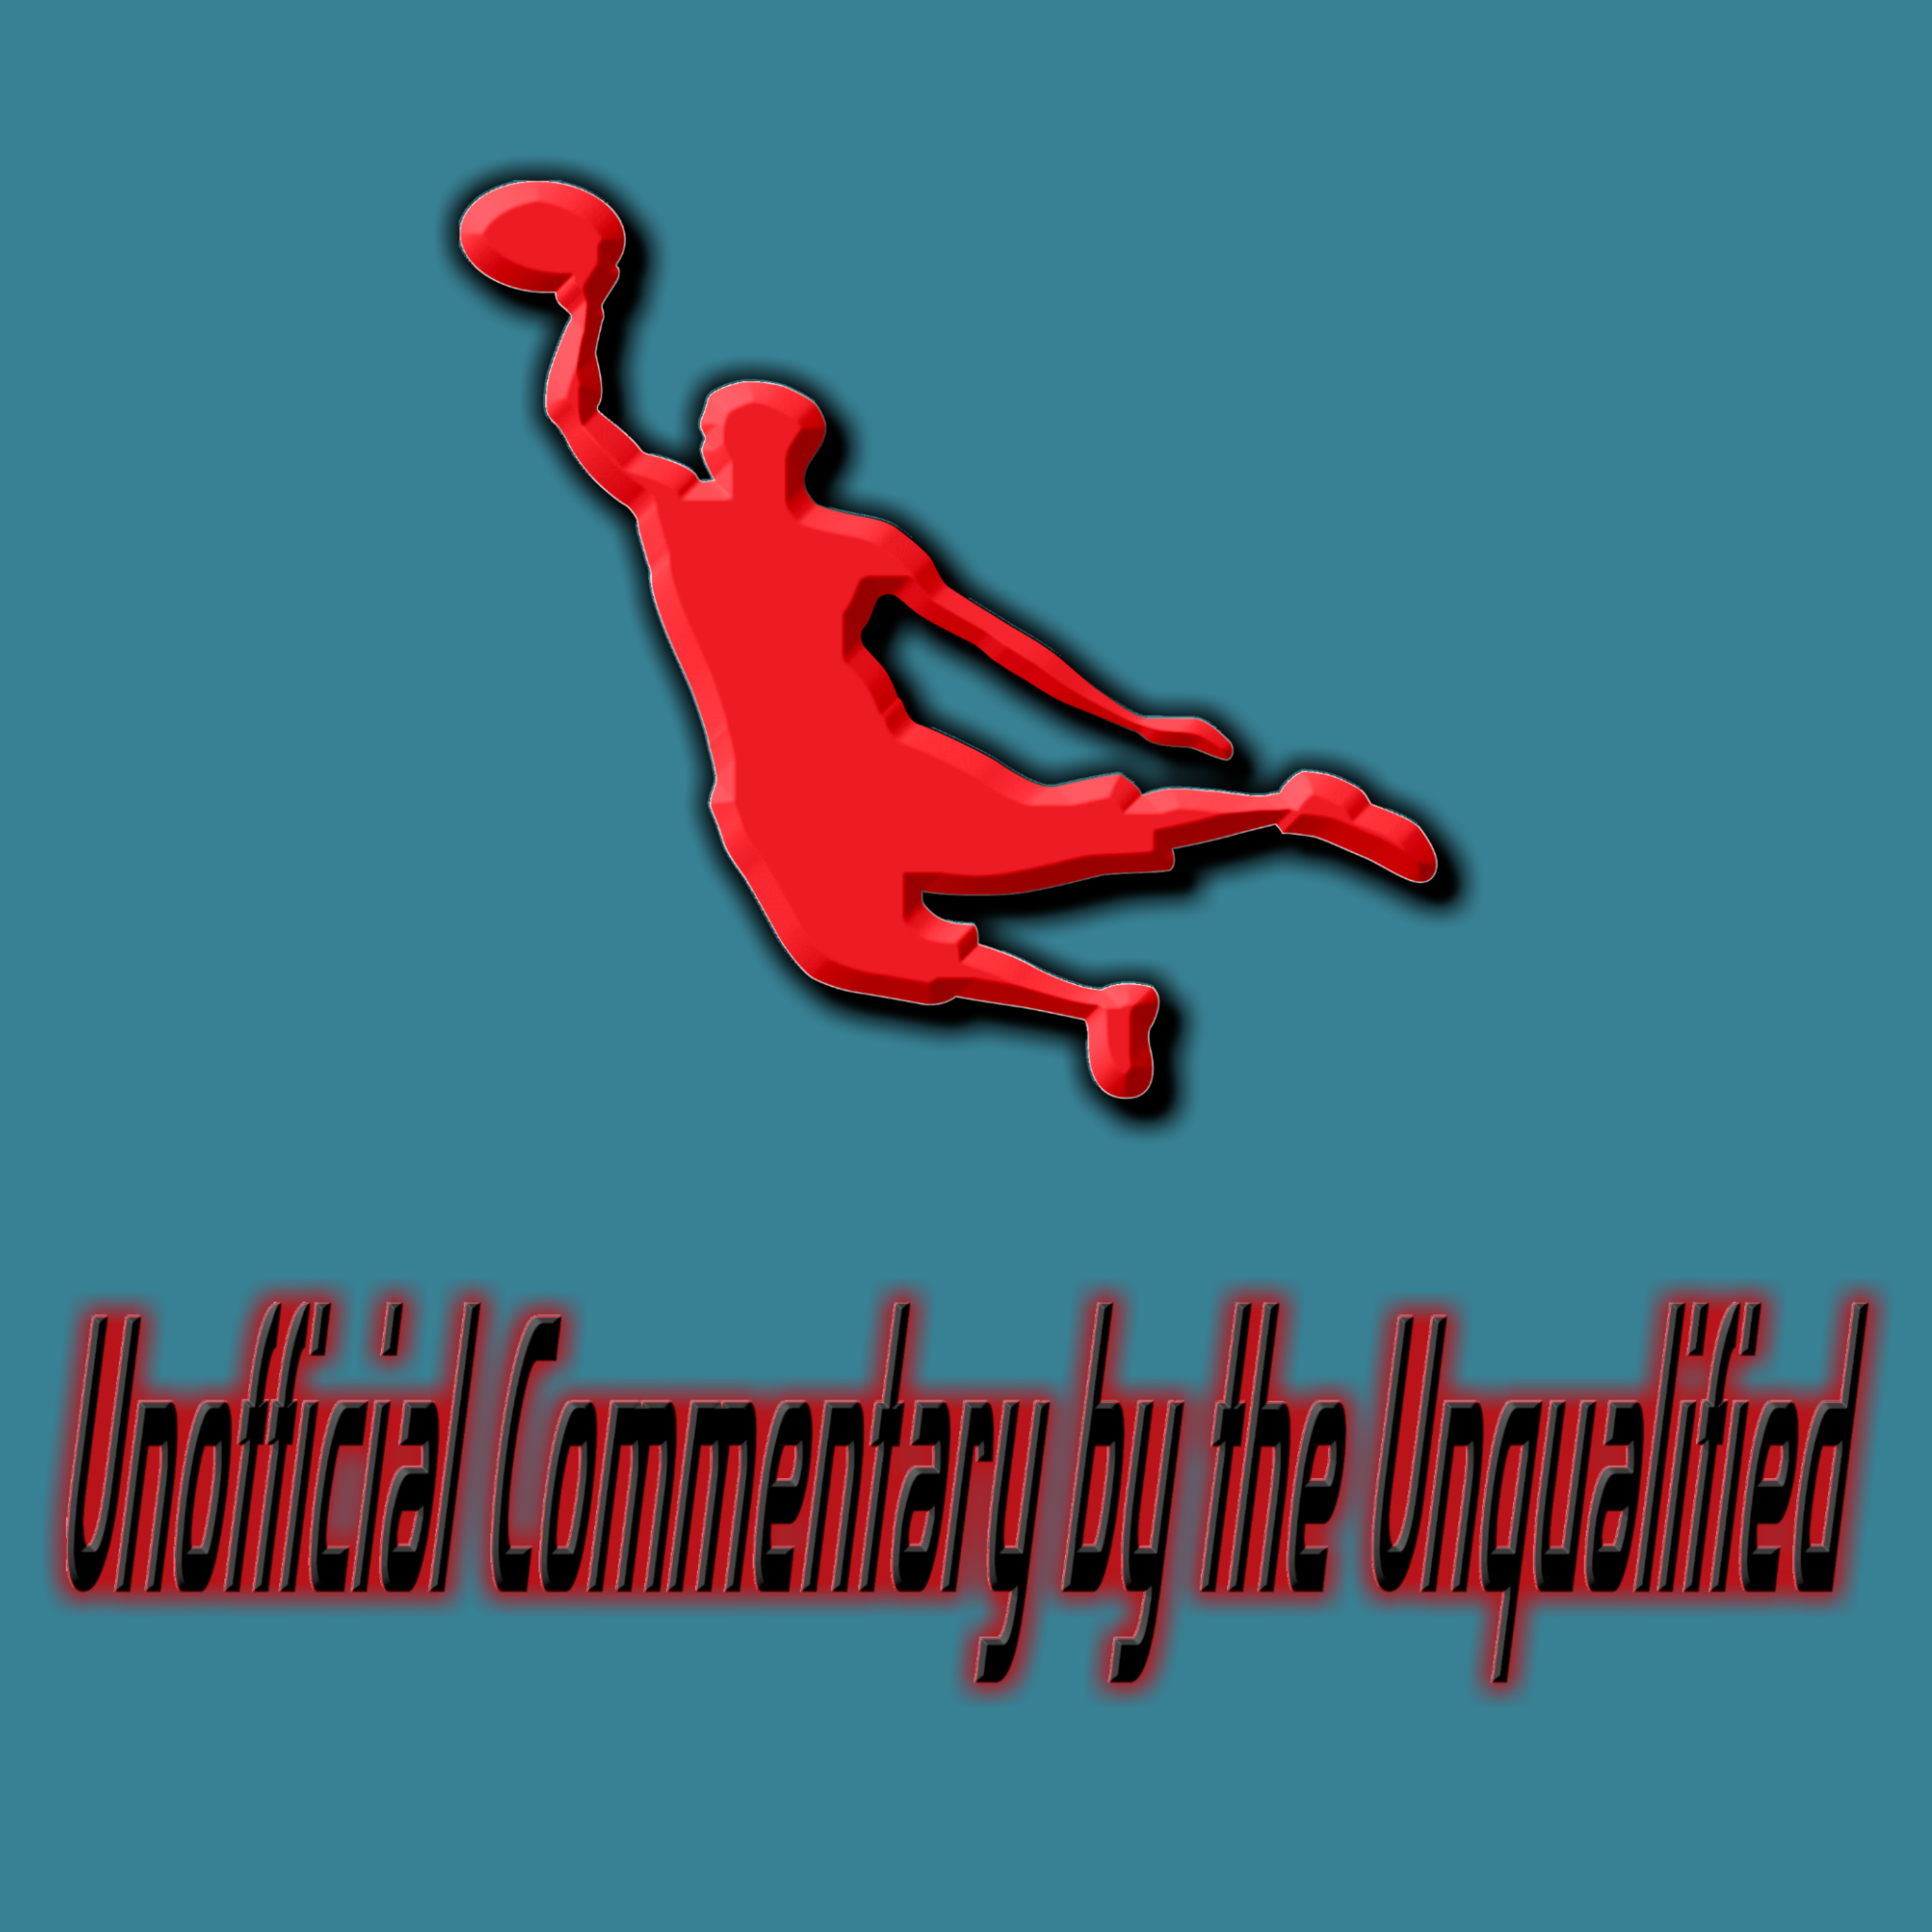 Unofficial Commentary by the Unqualified